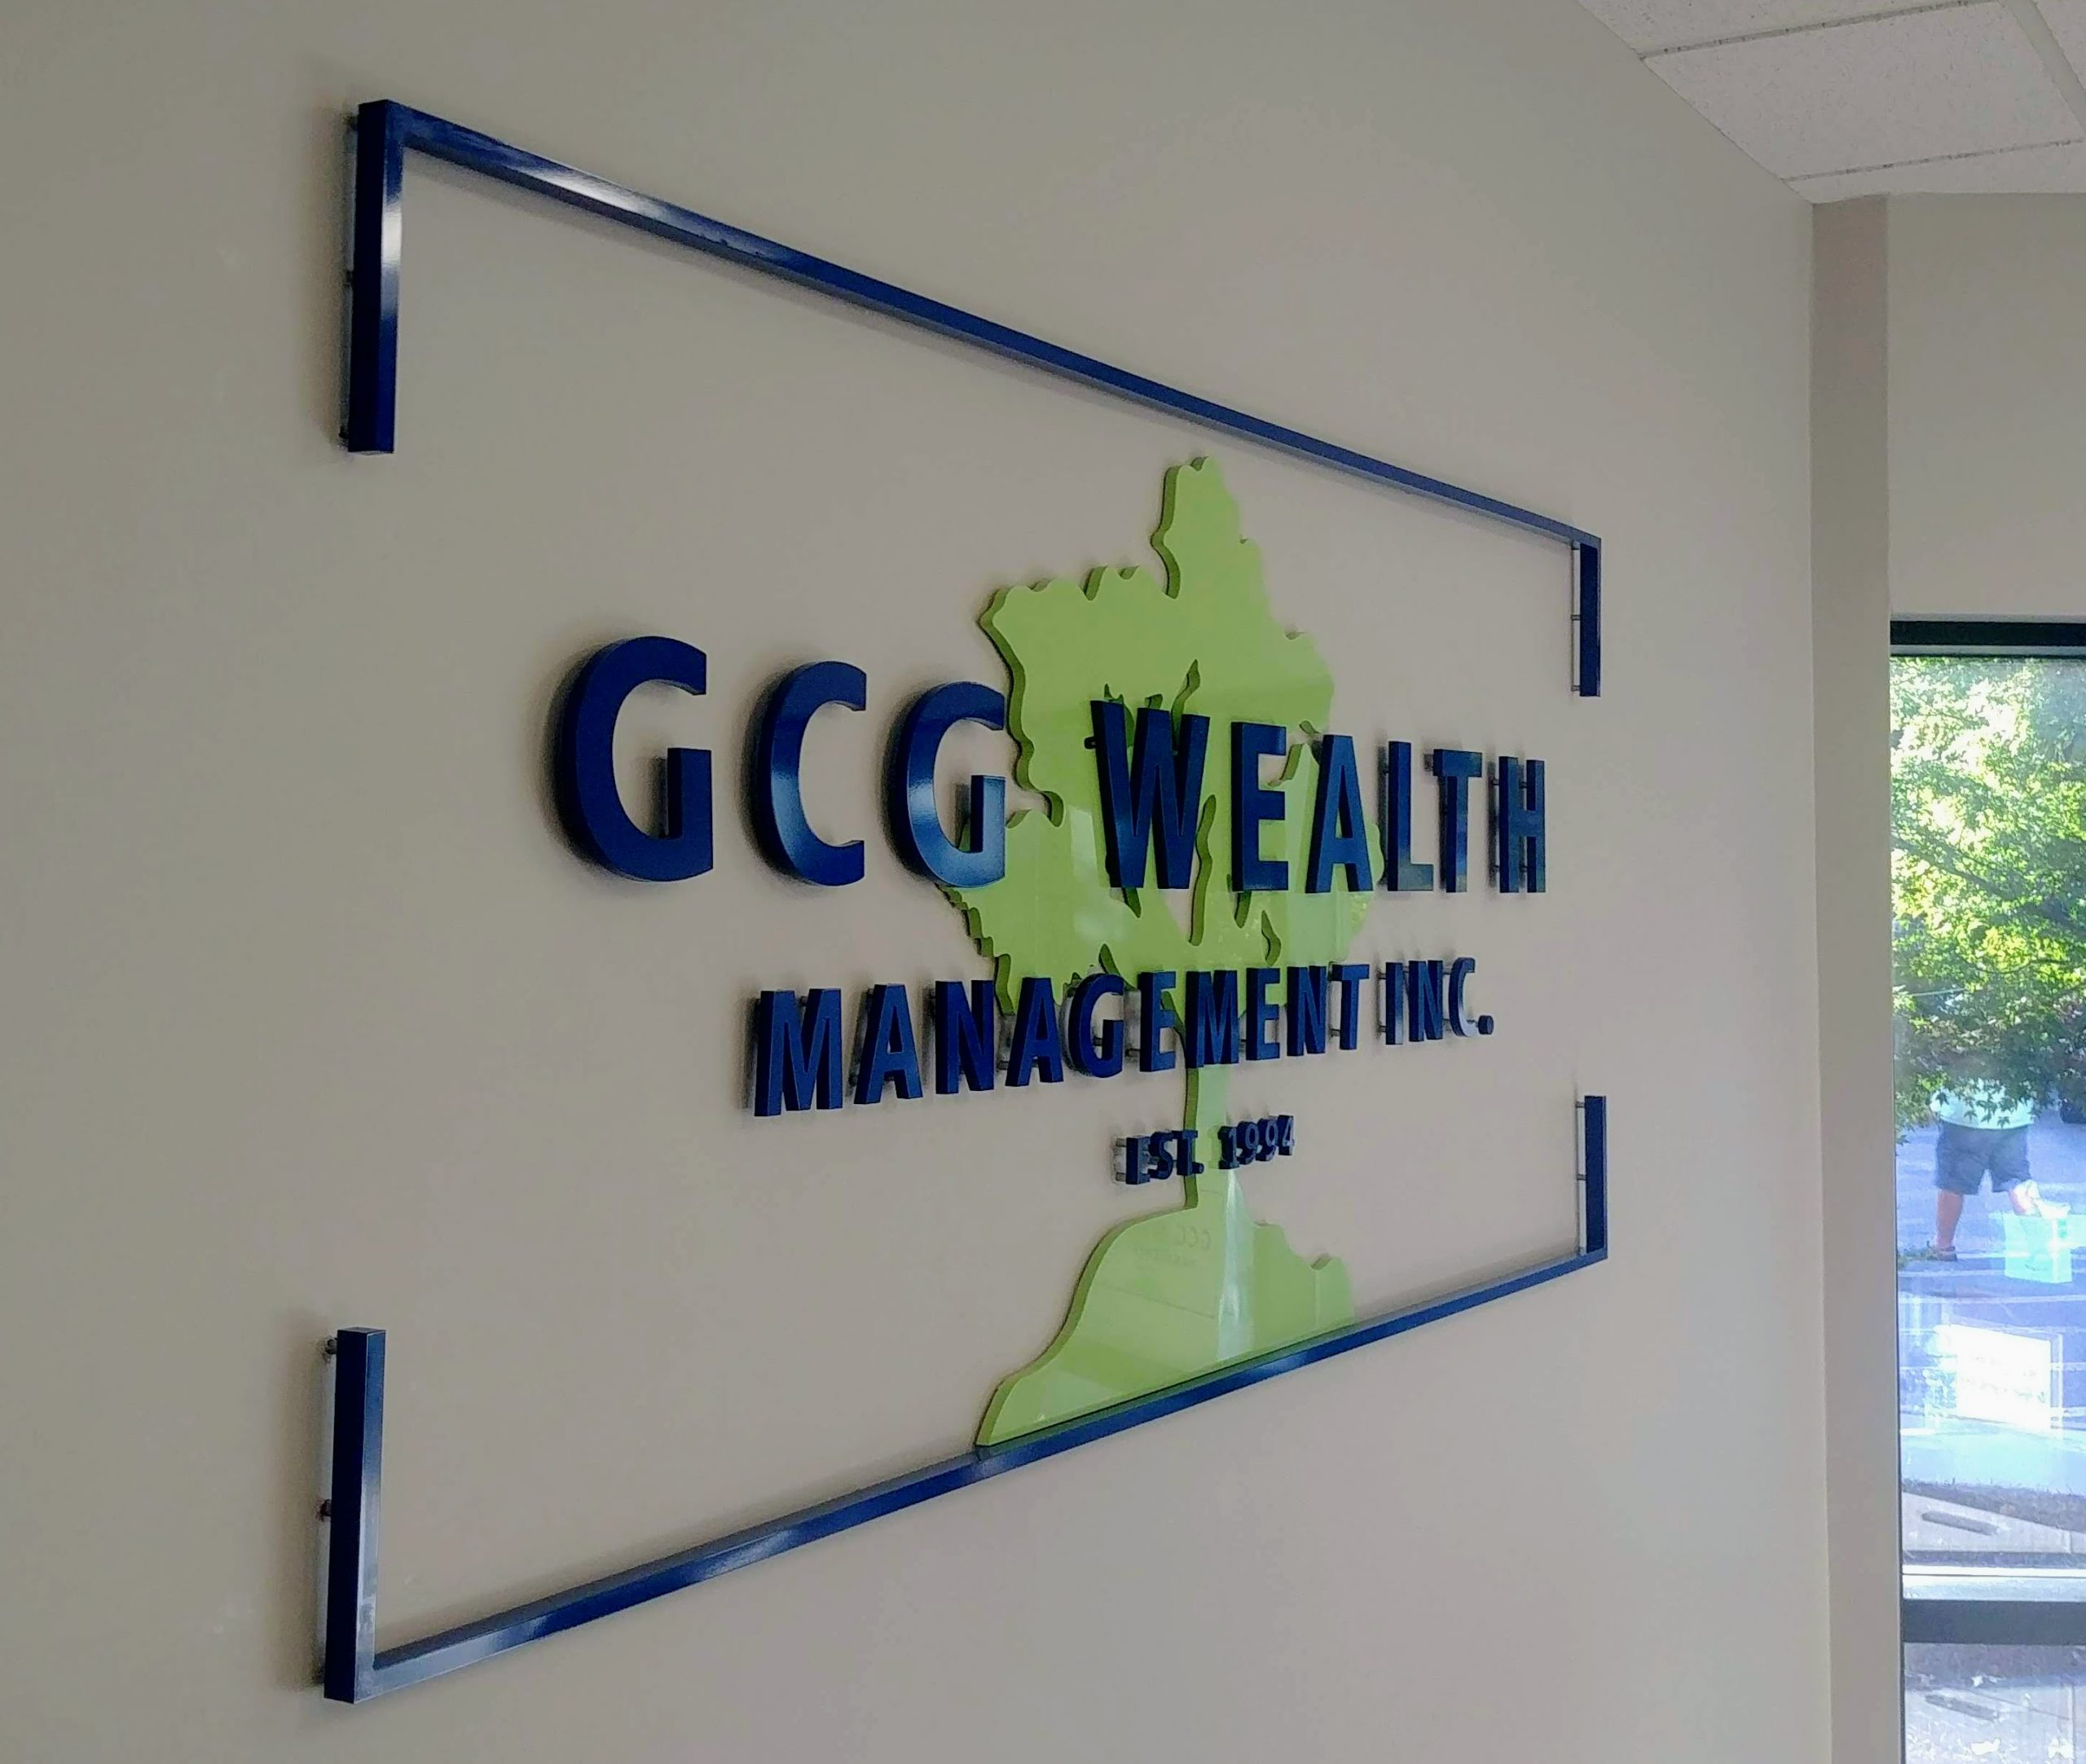 gcg_wealth_management_wall_display